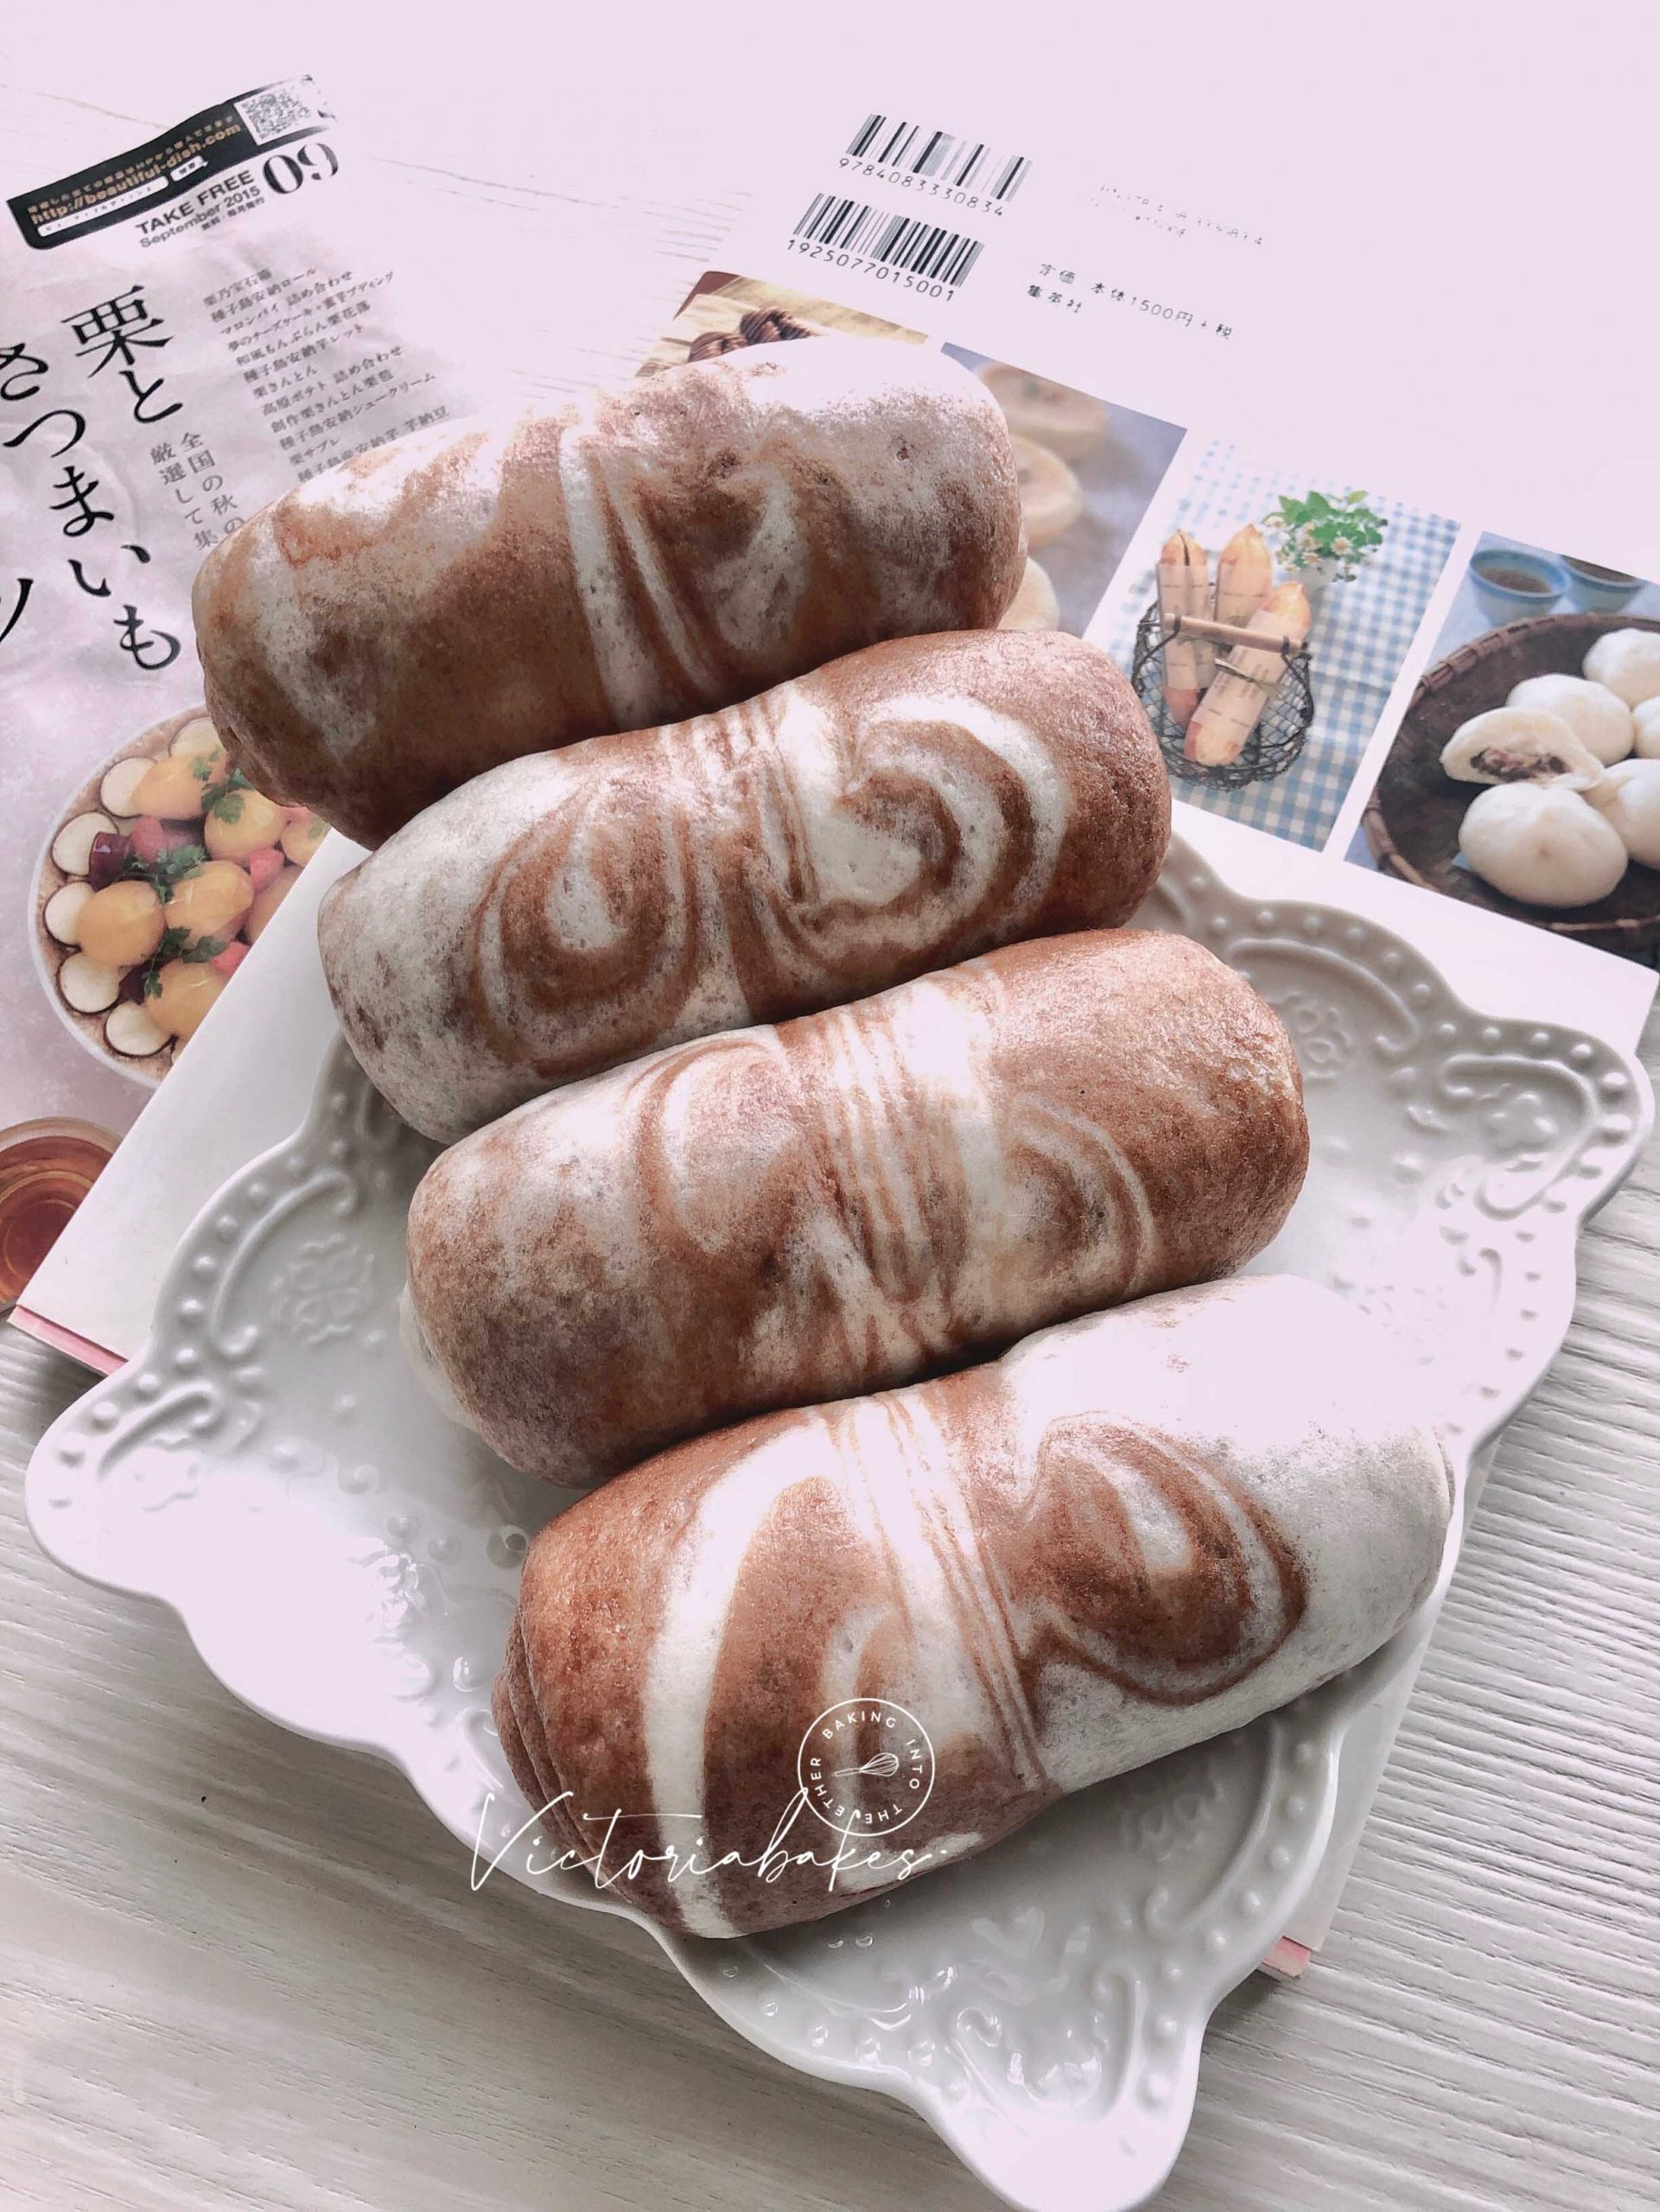 marble swirl mantou (steam bun) 云石蒸馒头